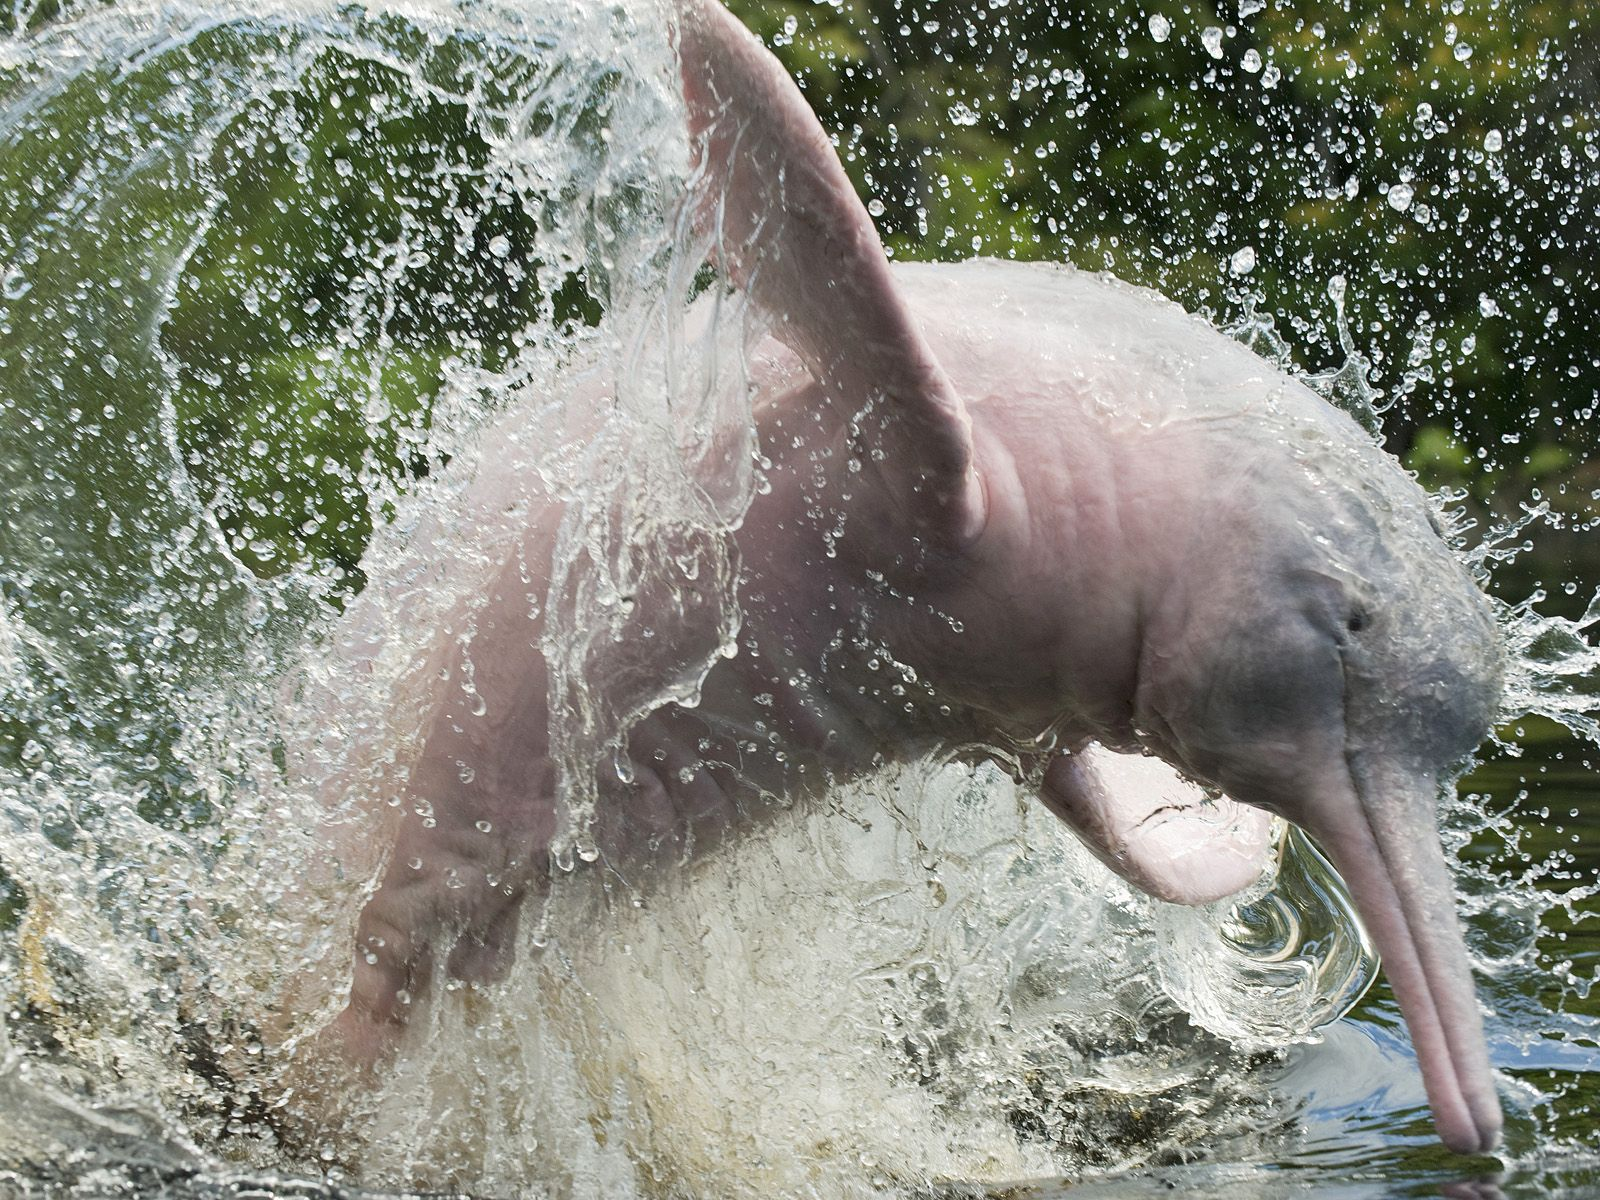 Amazon River Dolphins The Decline Of The Amazon River Dolphin